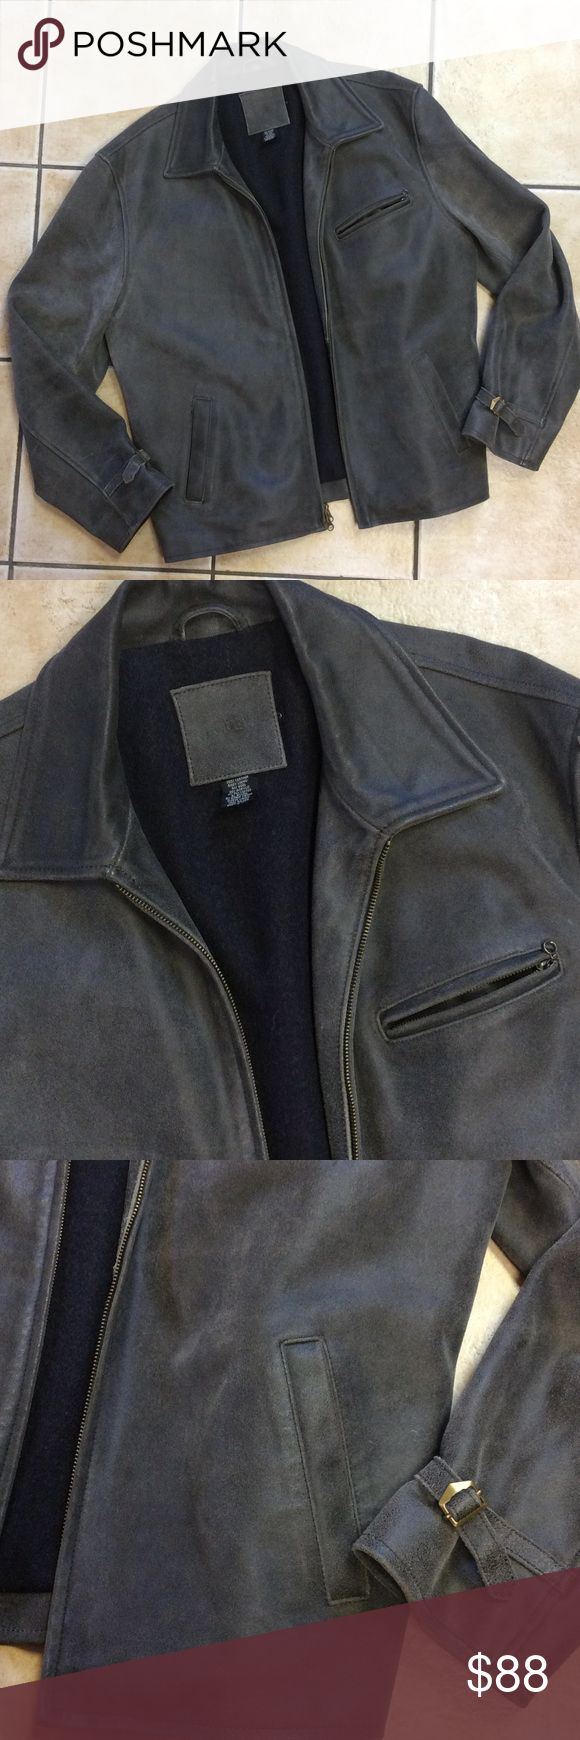 Men's Leather J.Crew Jacket! 100% leather J.Crew men's jacket. Zips up and has two pockets, and a small upper zip pocket.  Distressed stone wash style. Pre-owned with signs of wear. See last photo for blemishing. I believe this is just a superficial blemish, it's not a rip or scratch. It might just need to be hand washed in this area. It's located on the back left sleeve. Really heavy,well made jacket! 61% wool lining J.crew Jackets & Coats